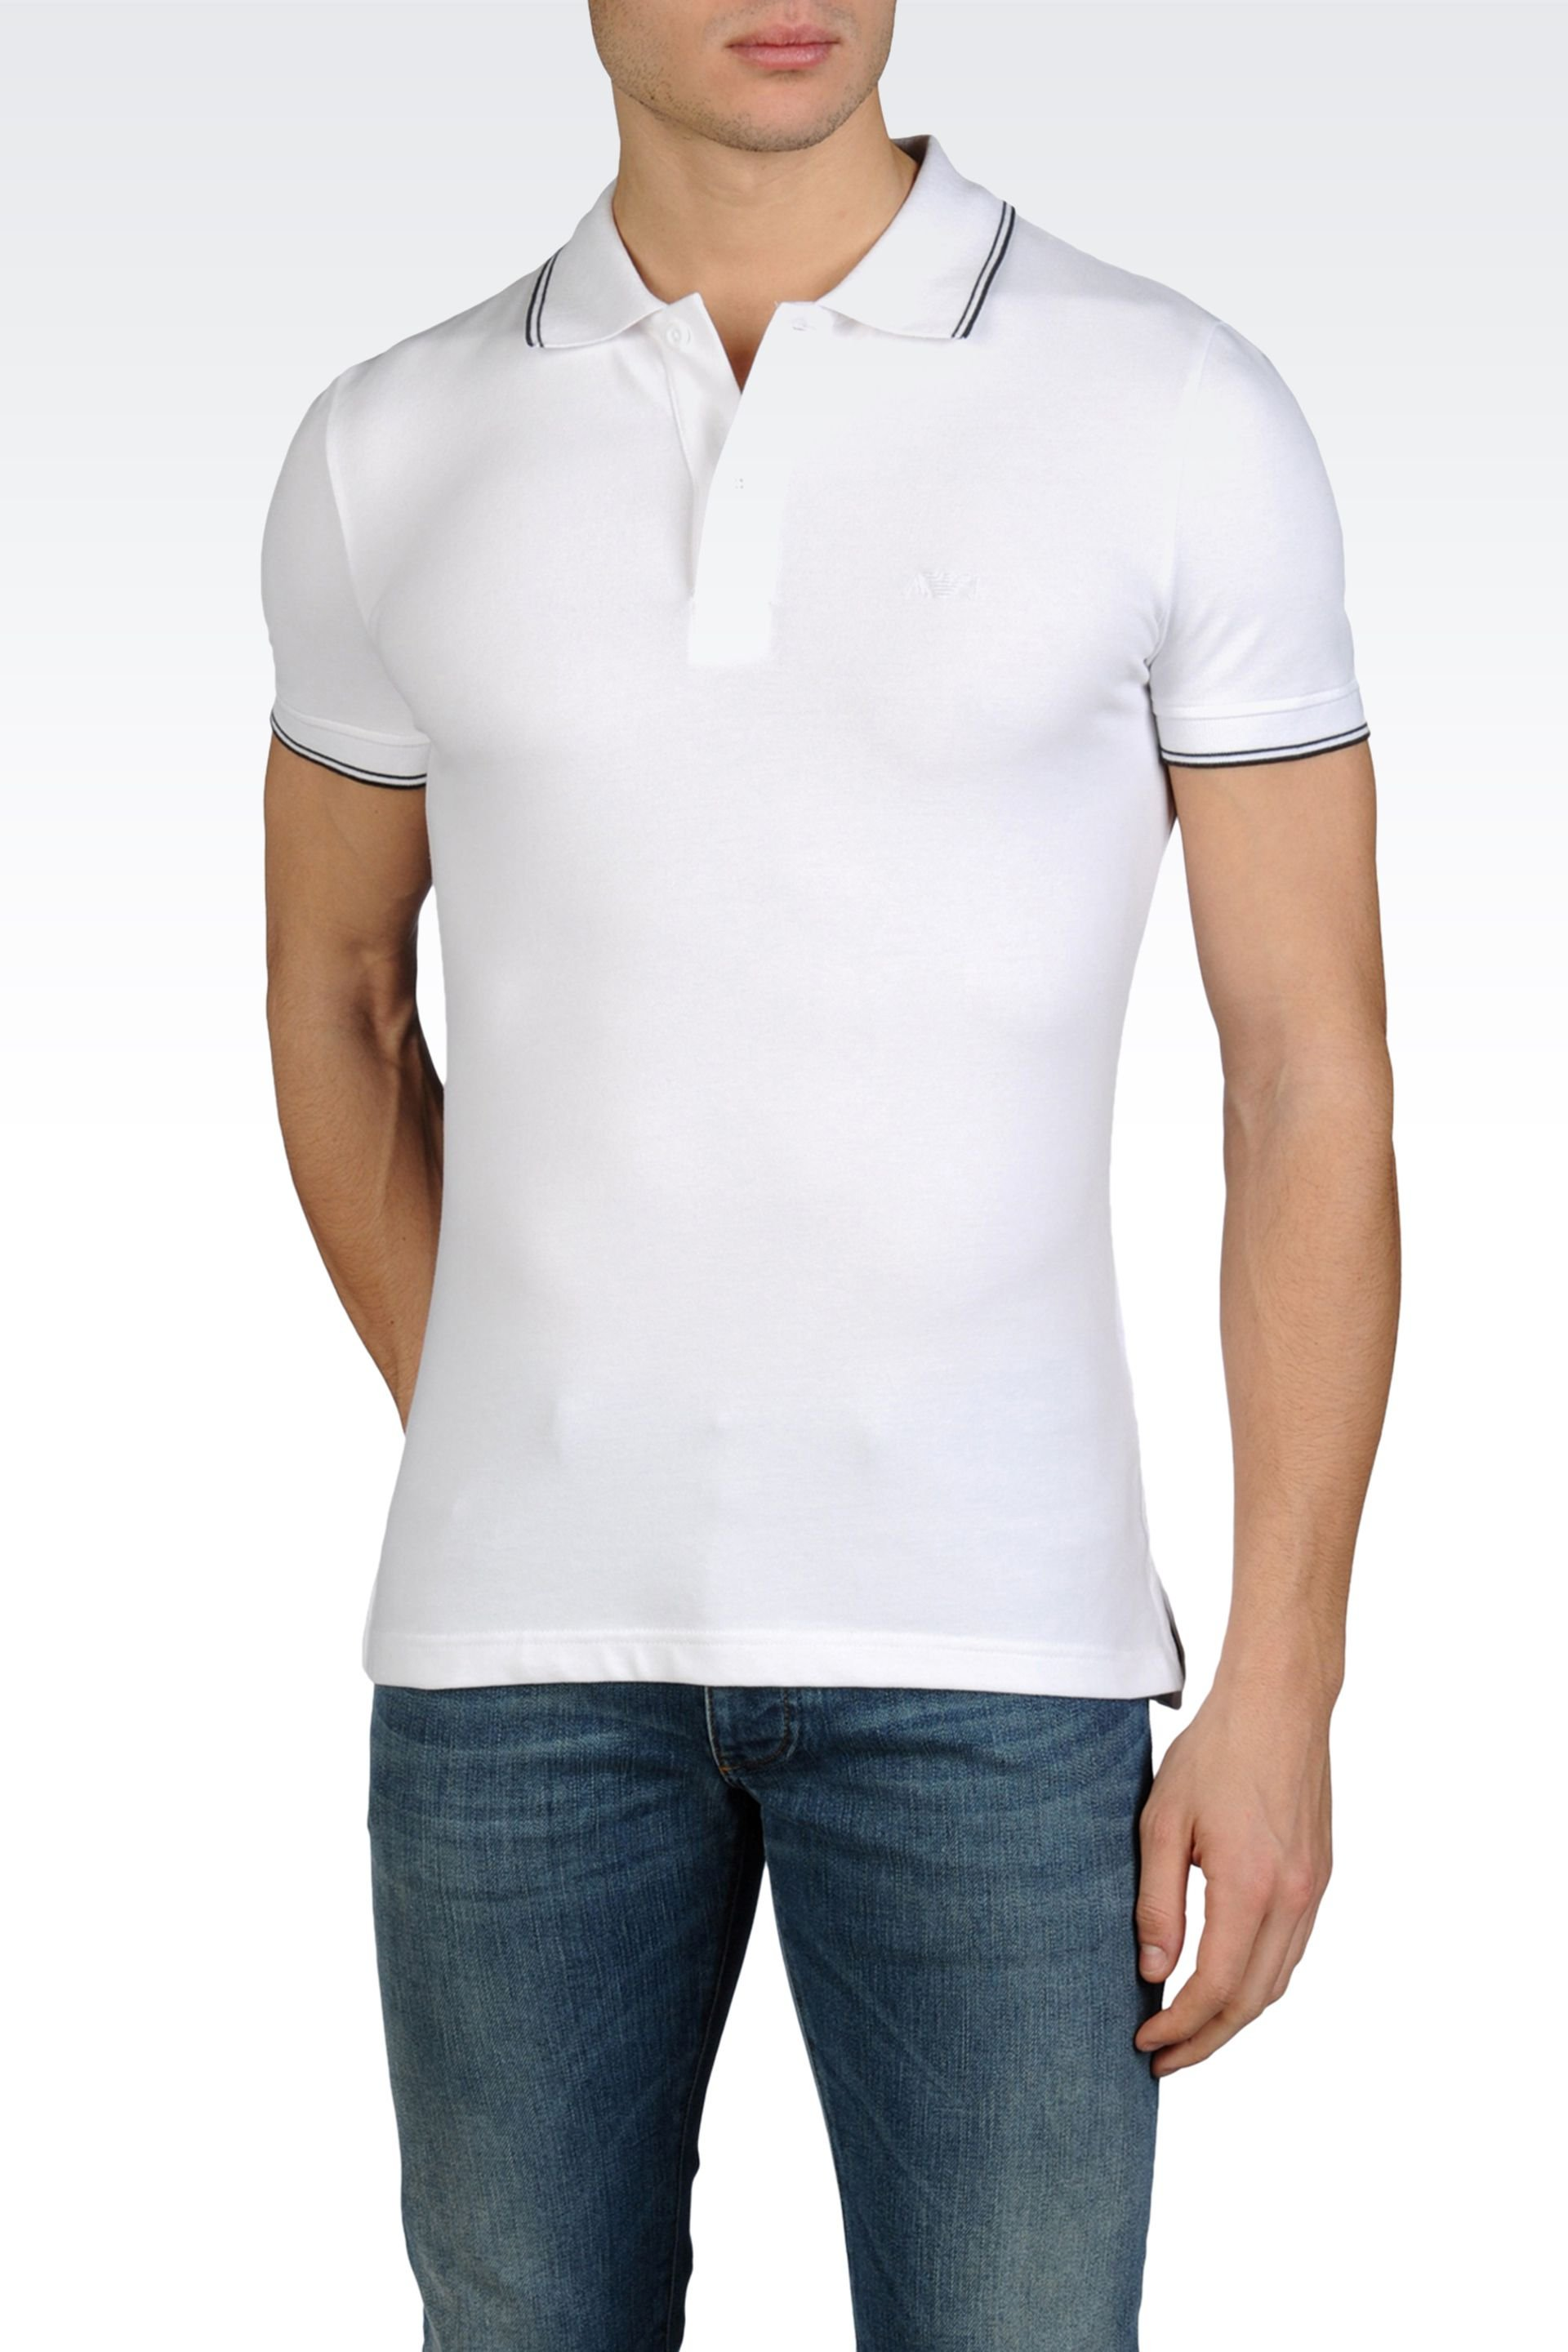 Armani jeans short sleeve fitted polo shirt in white for for White fitted polo shirts